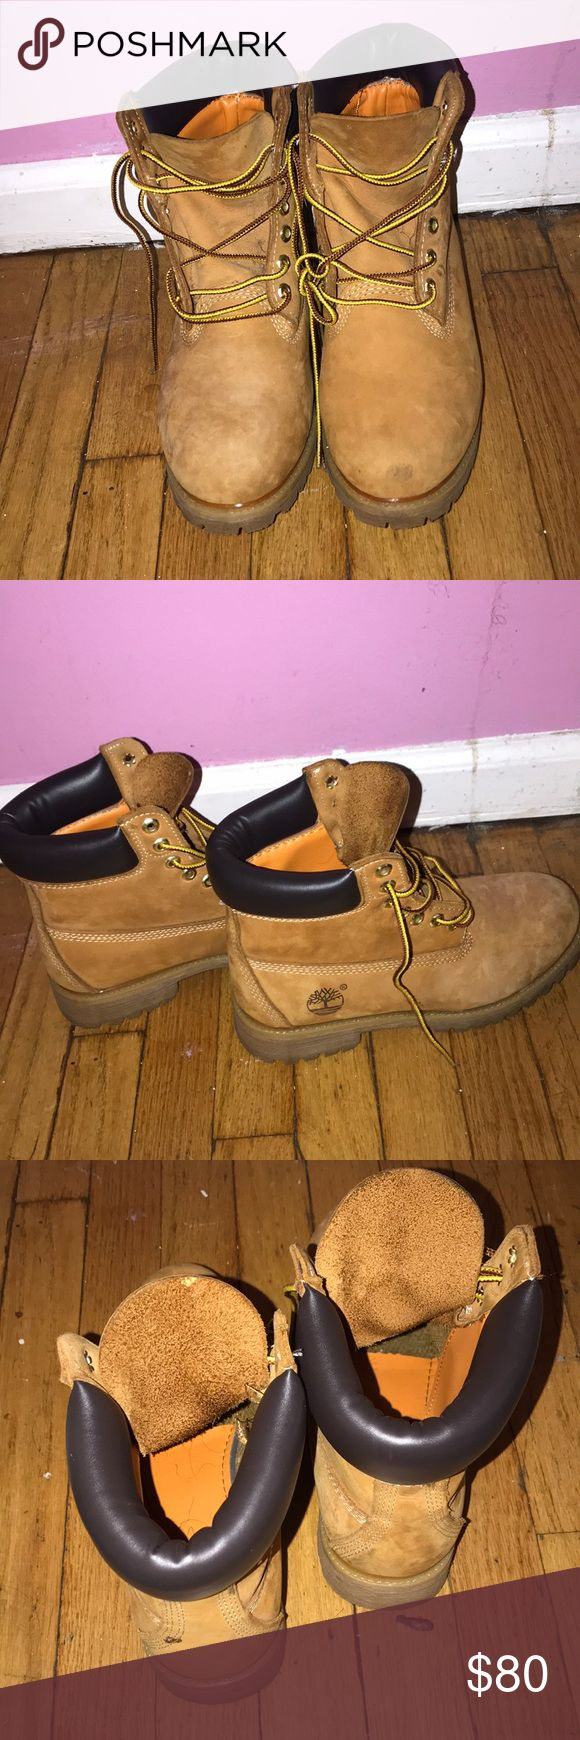 WHEAT TIMBERLANDS BOOTS- SLIGHT SHOW OF WEAR Slight scuffs on show can be cleaned. Size 9 Timberland Shoes